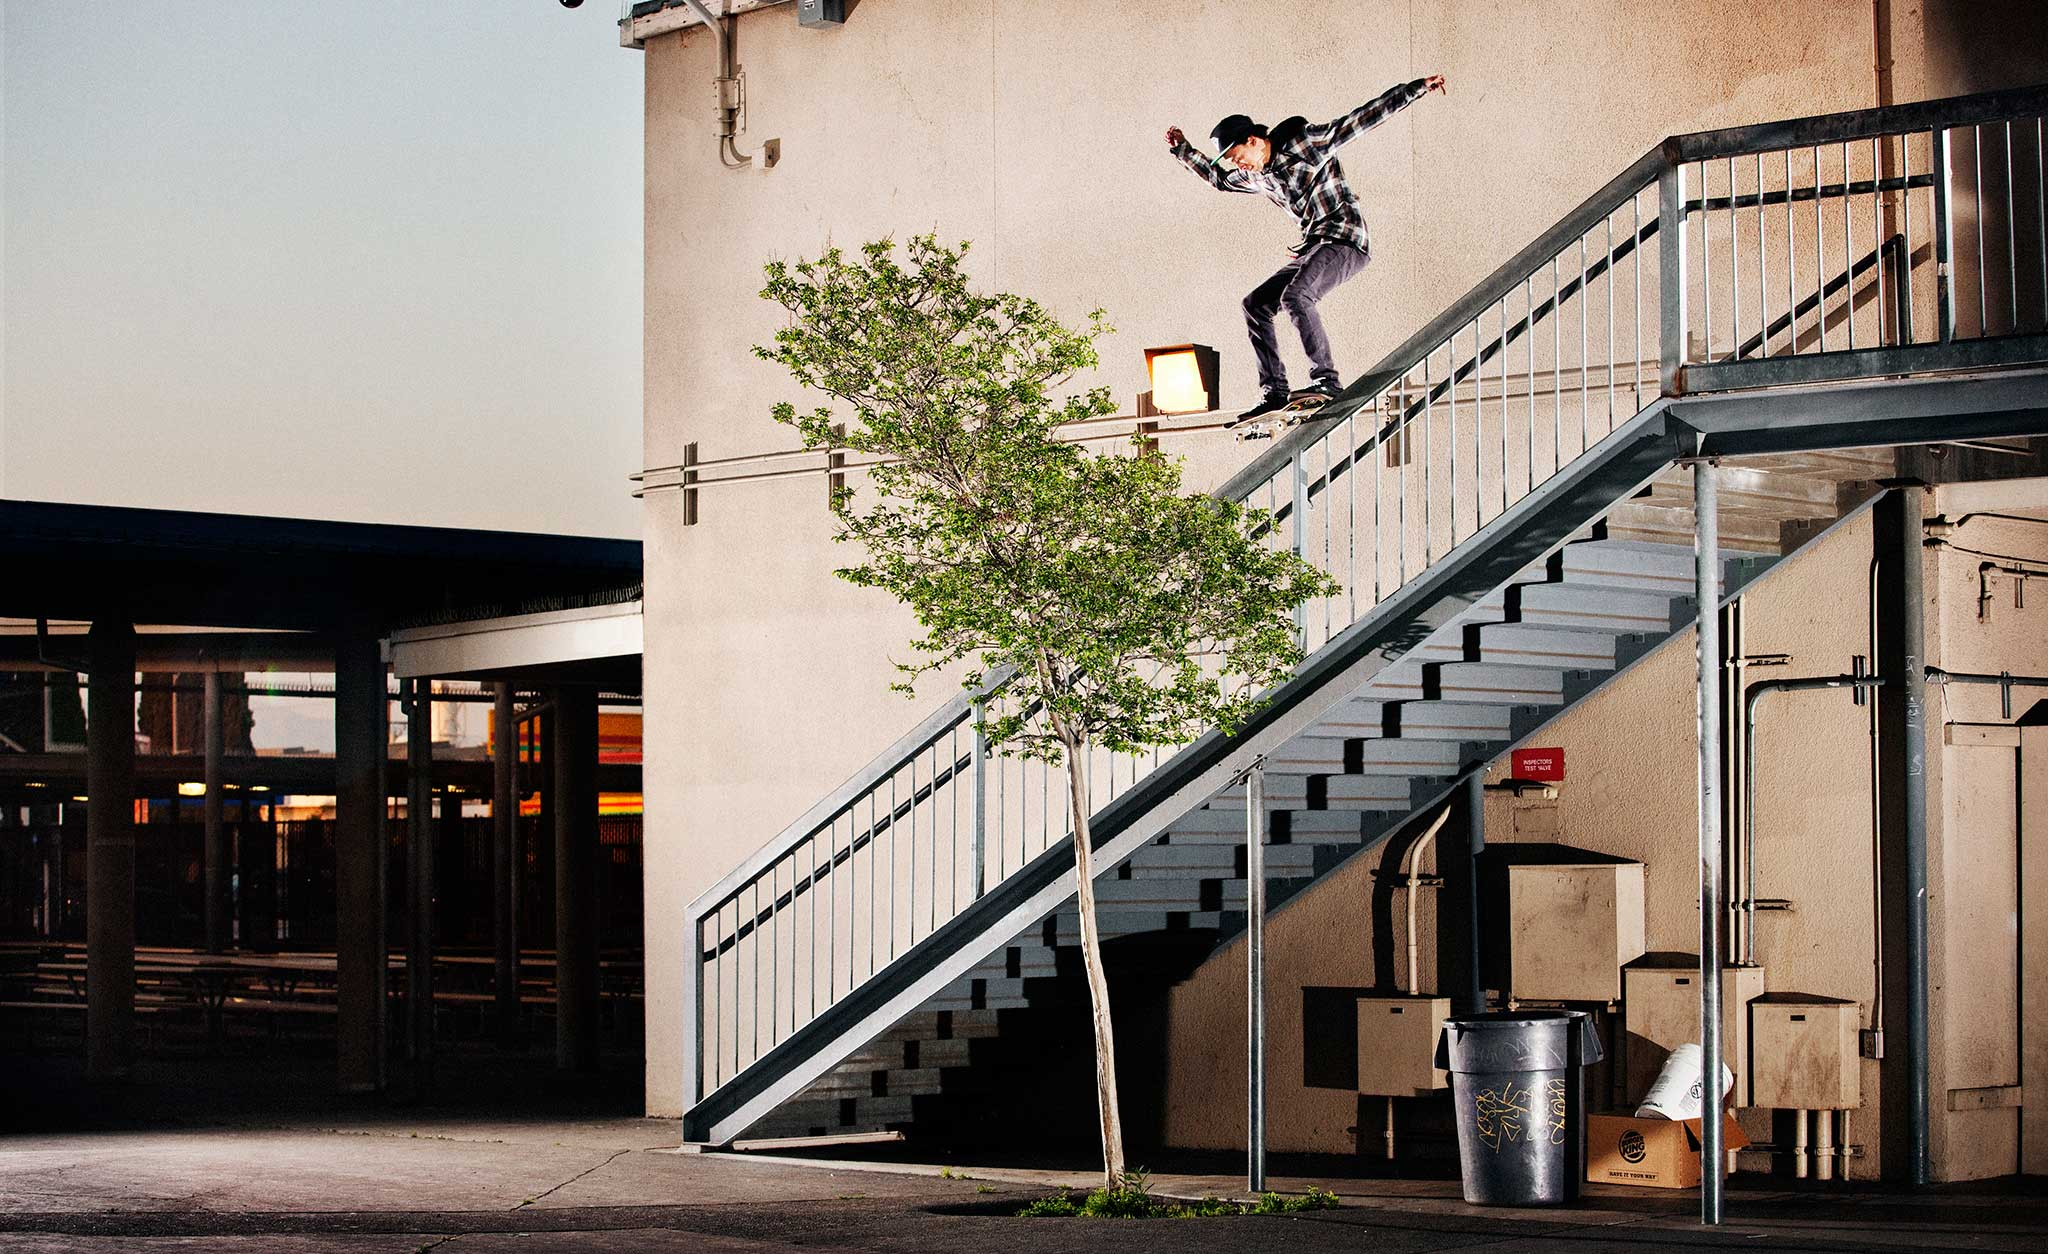 9: Nyjah Huston